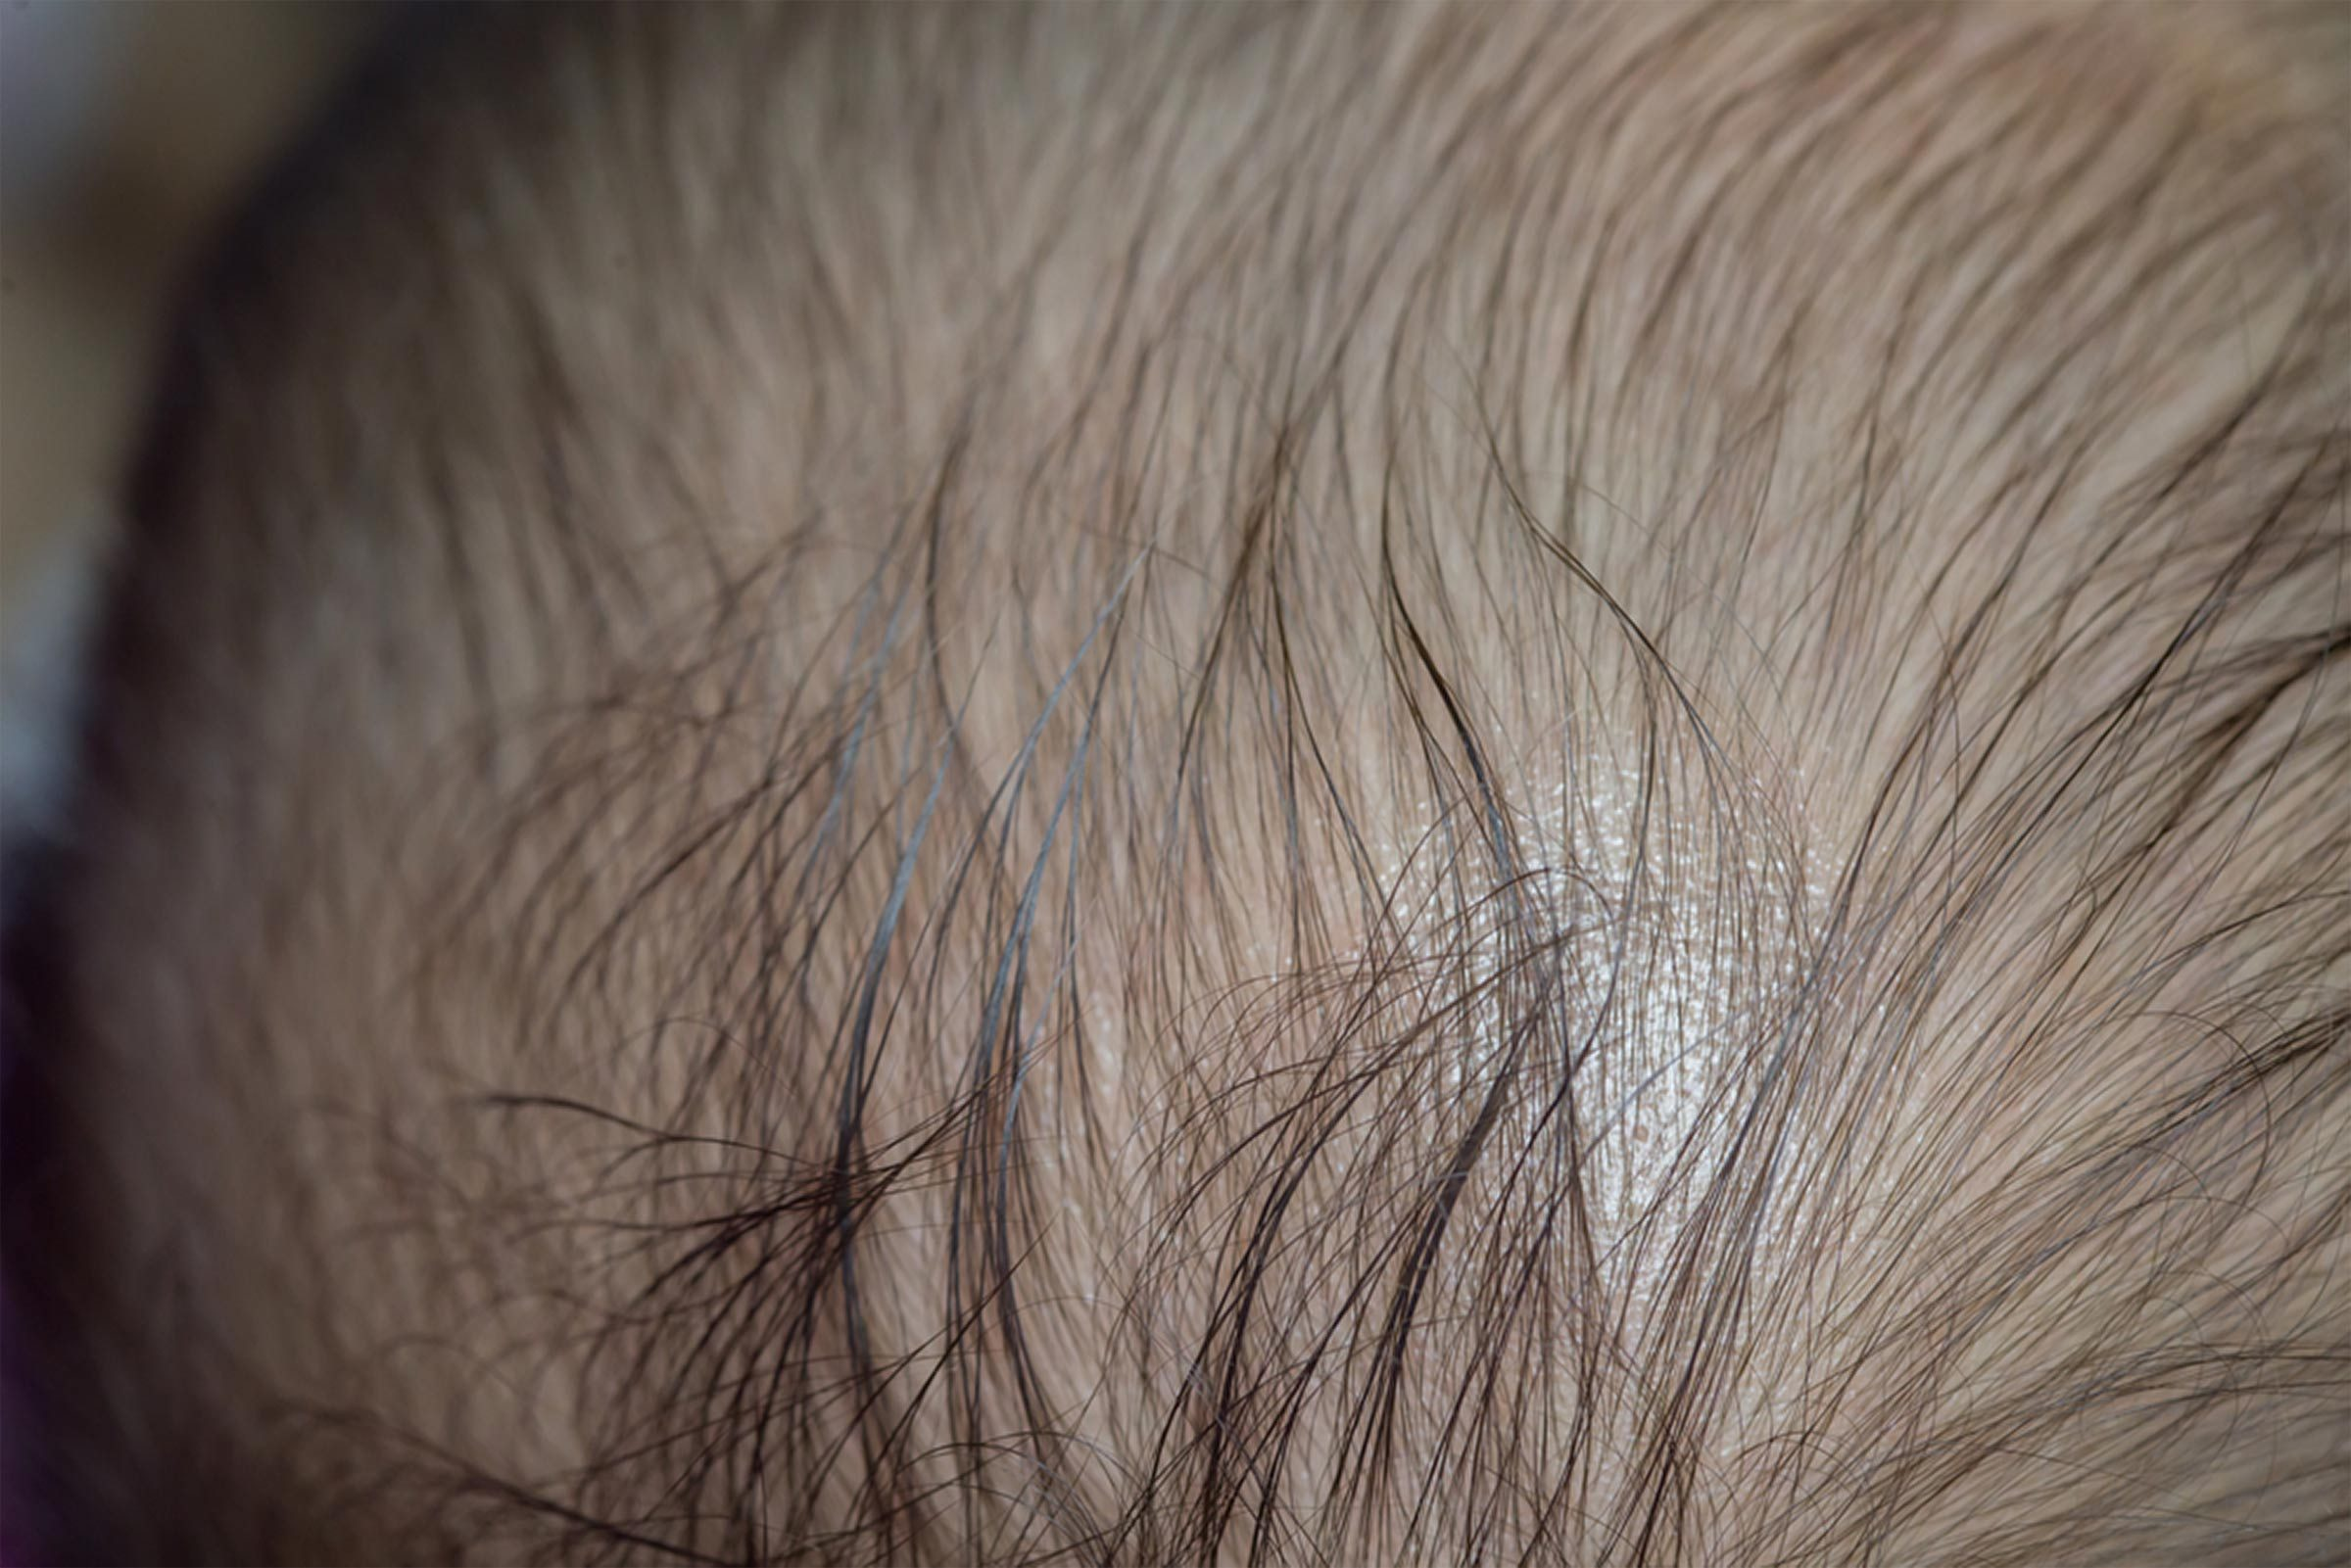 21 Reasons for Your Itchy Scalp (Besides Head Lice) | Reader's Digest